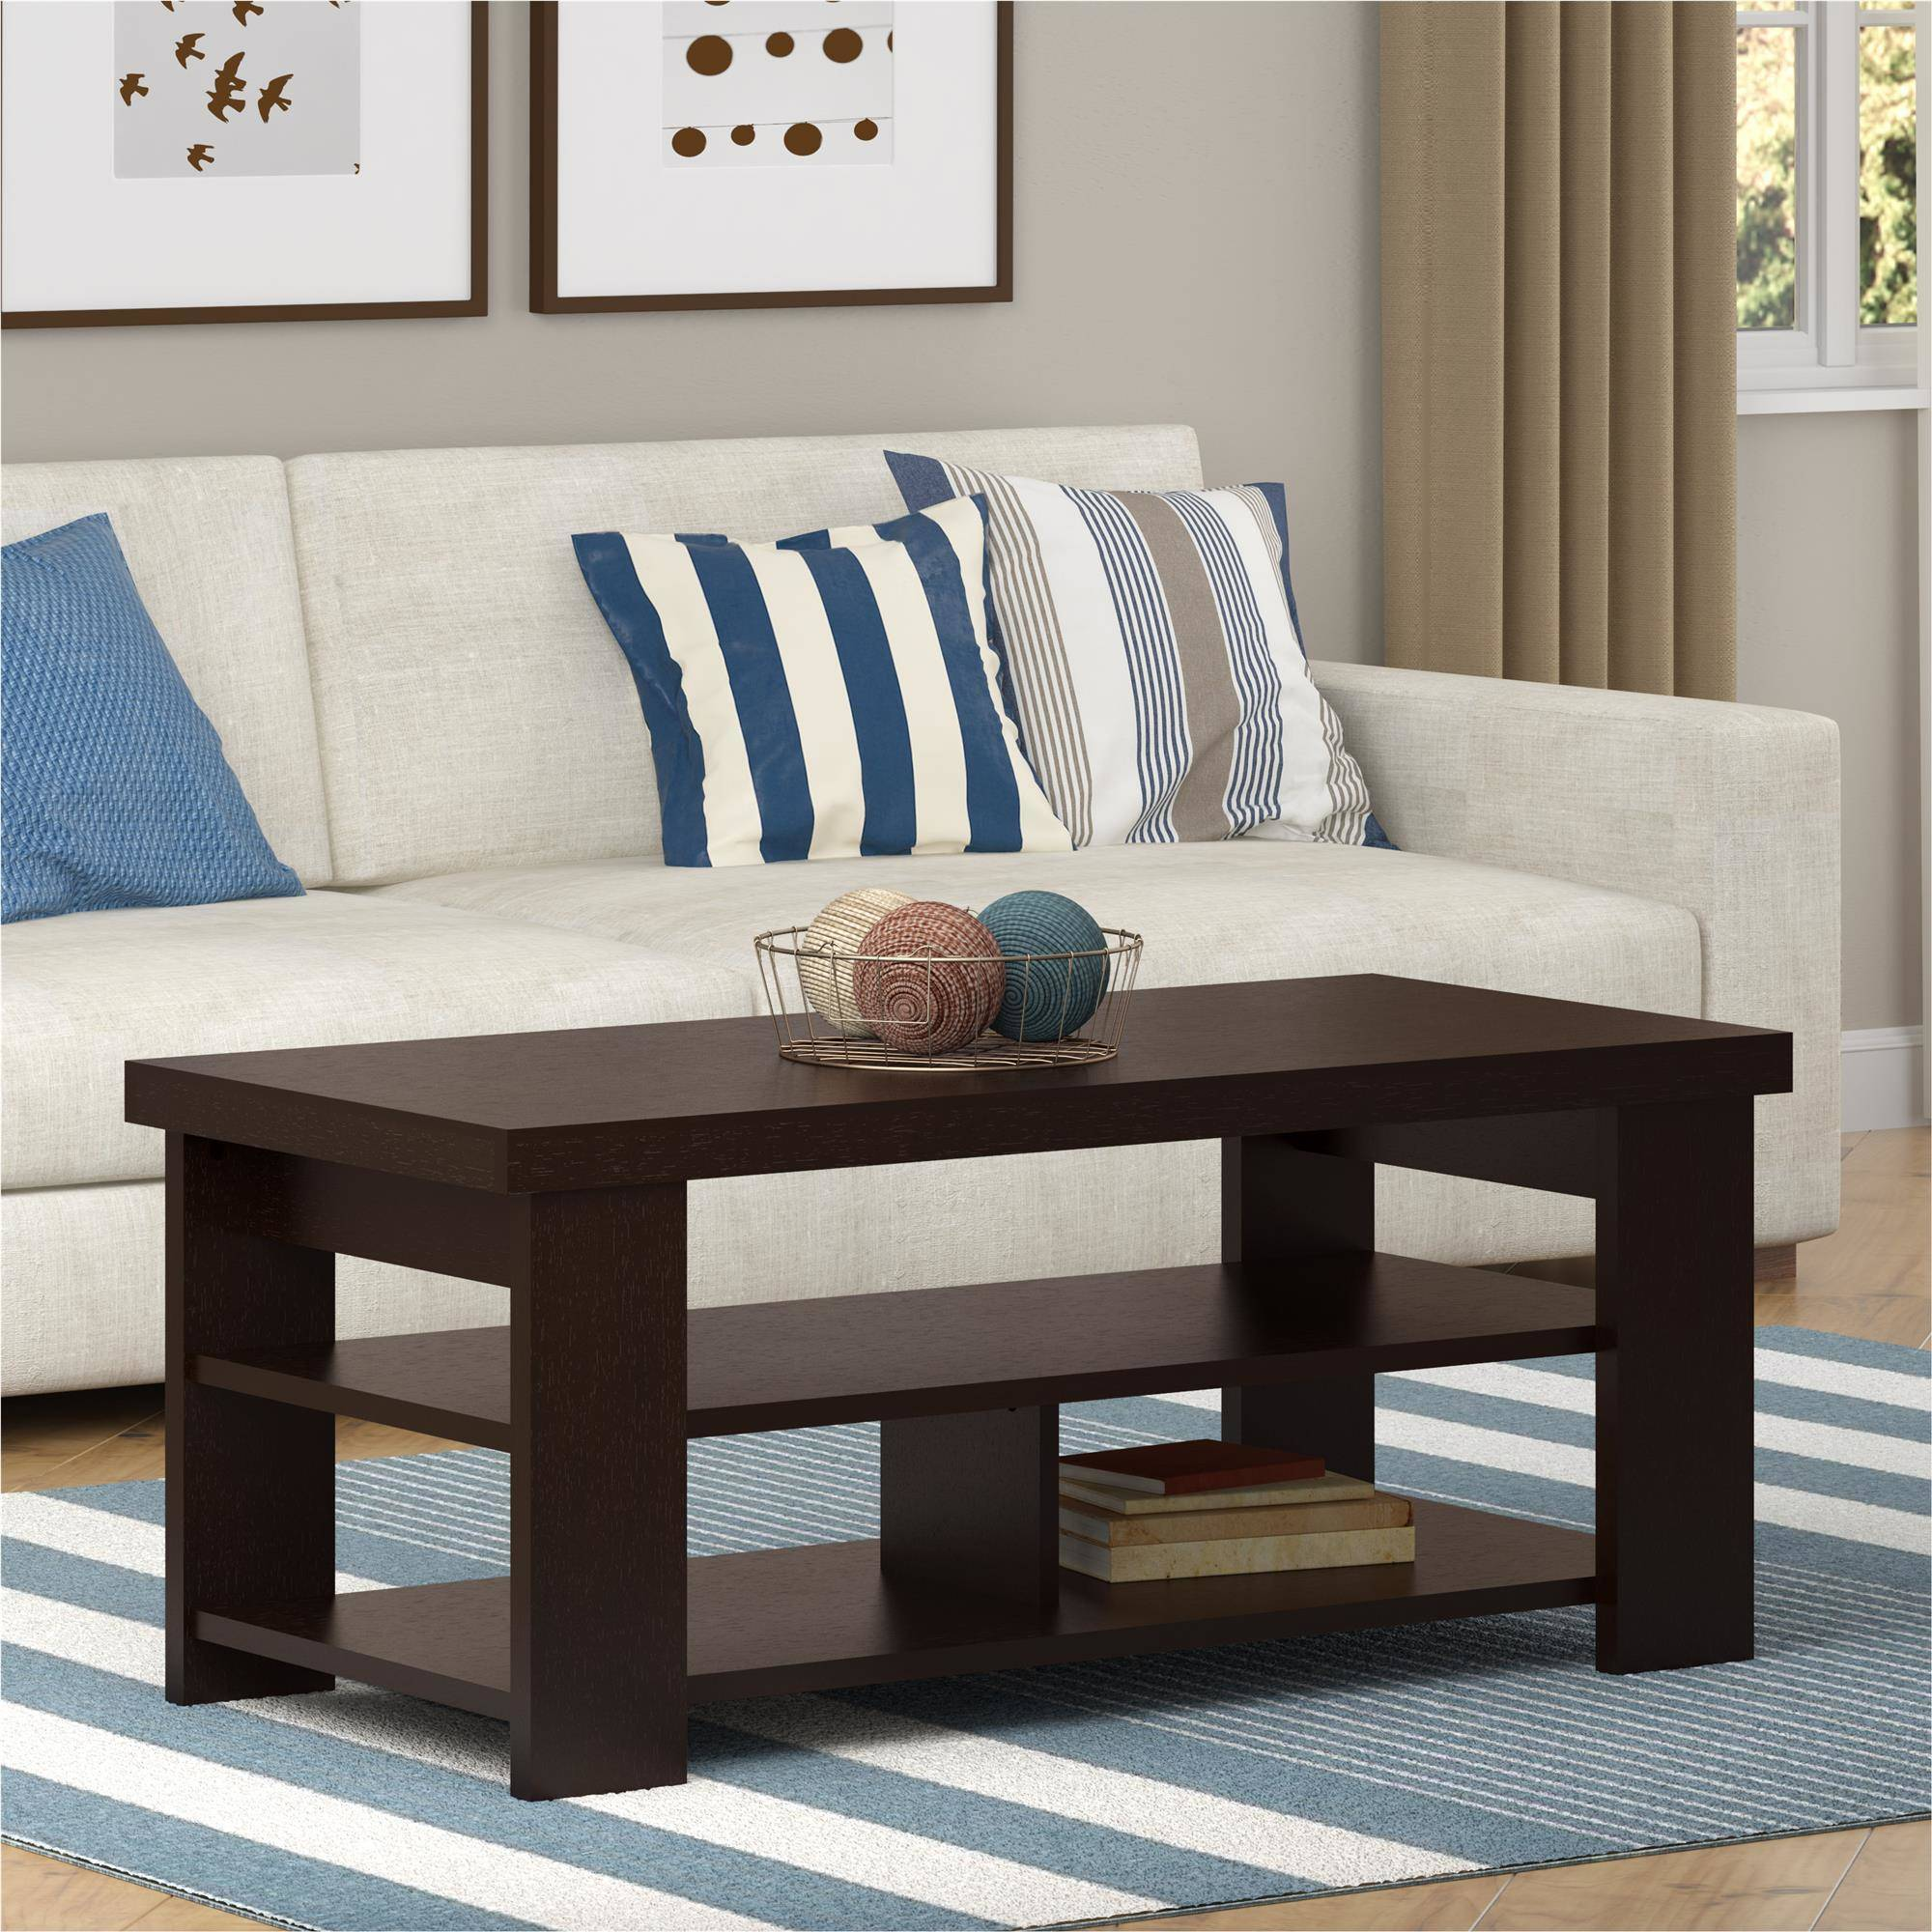 Larkin Coffee Table by Ameriwood, Multiple Finishes